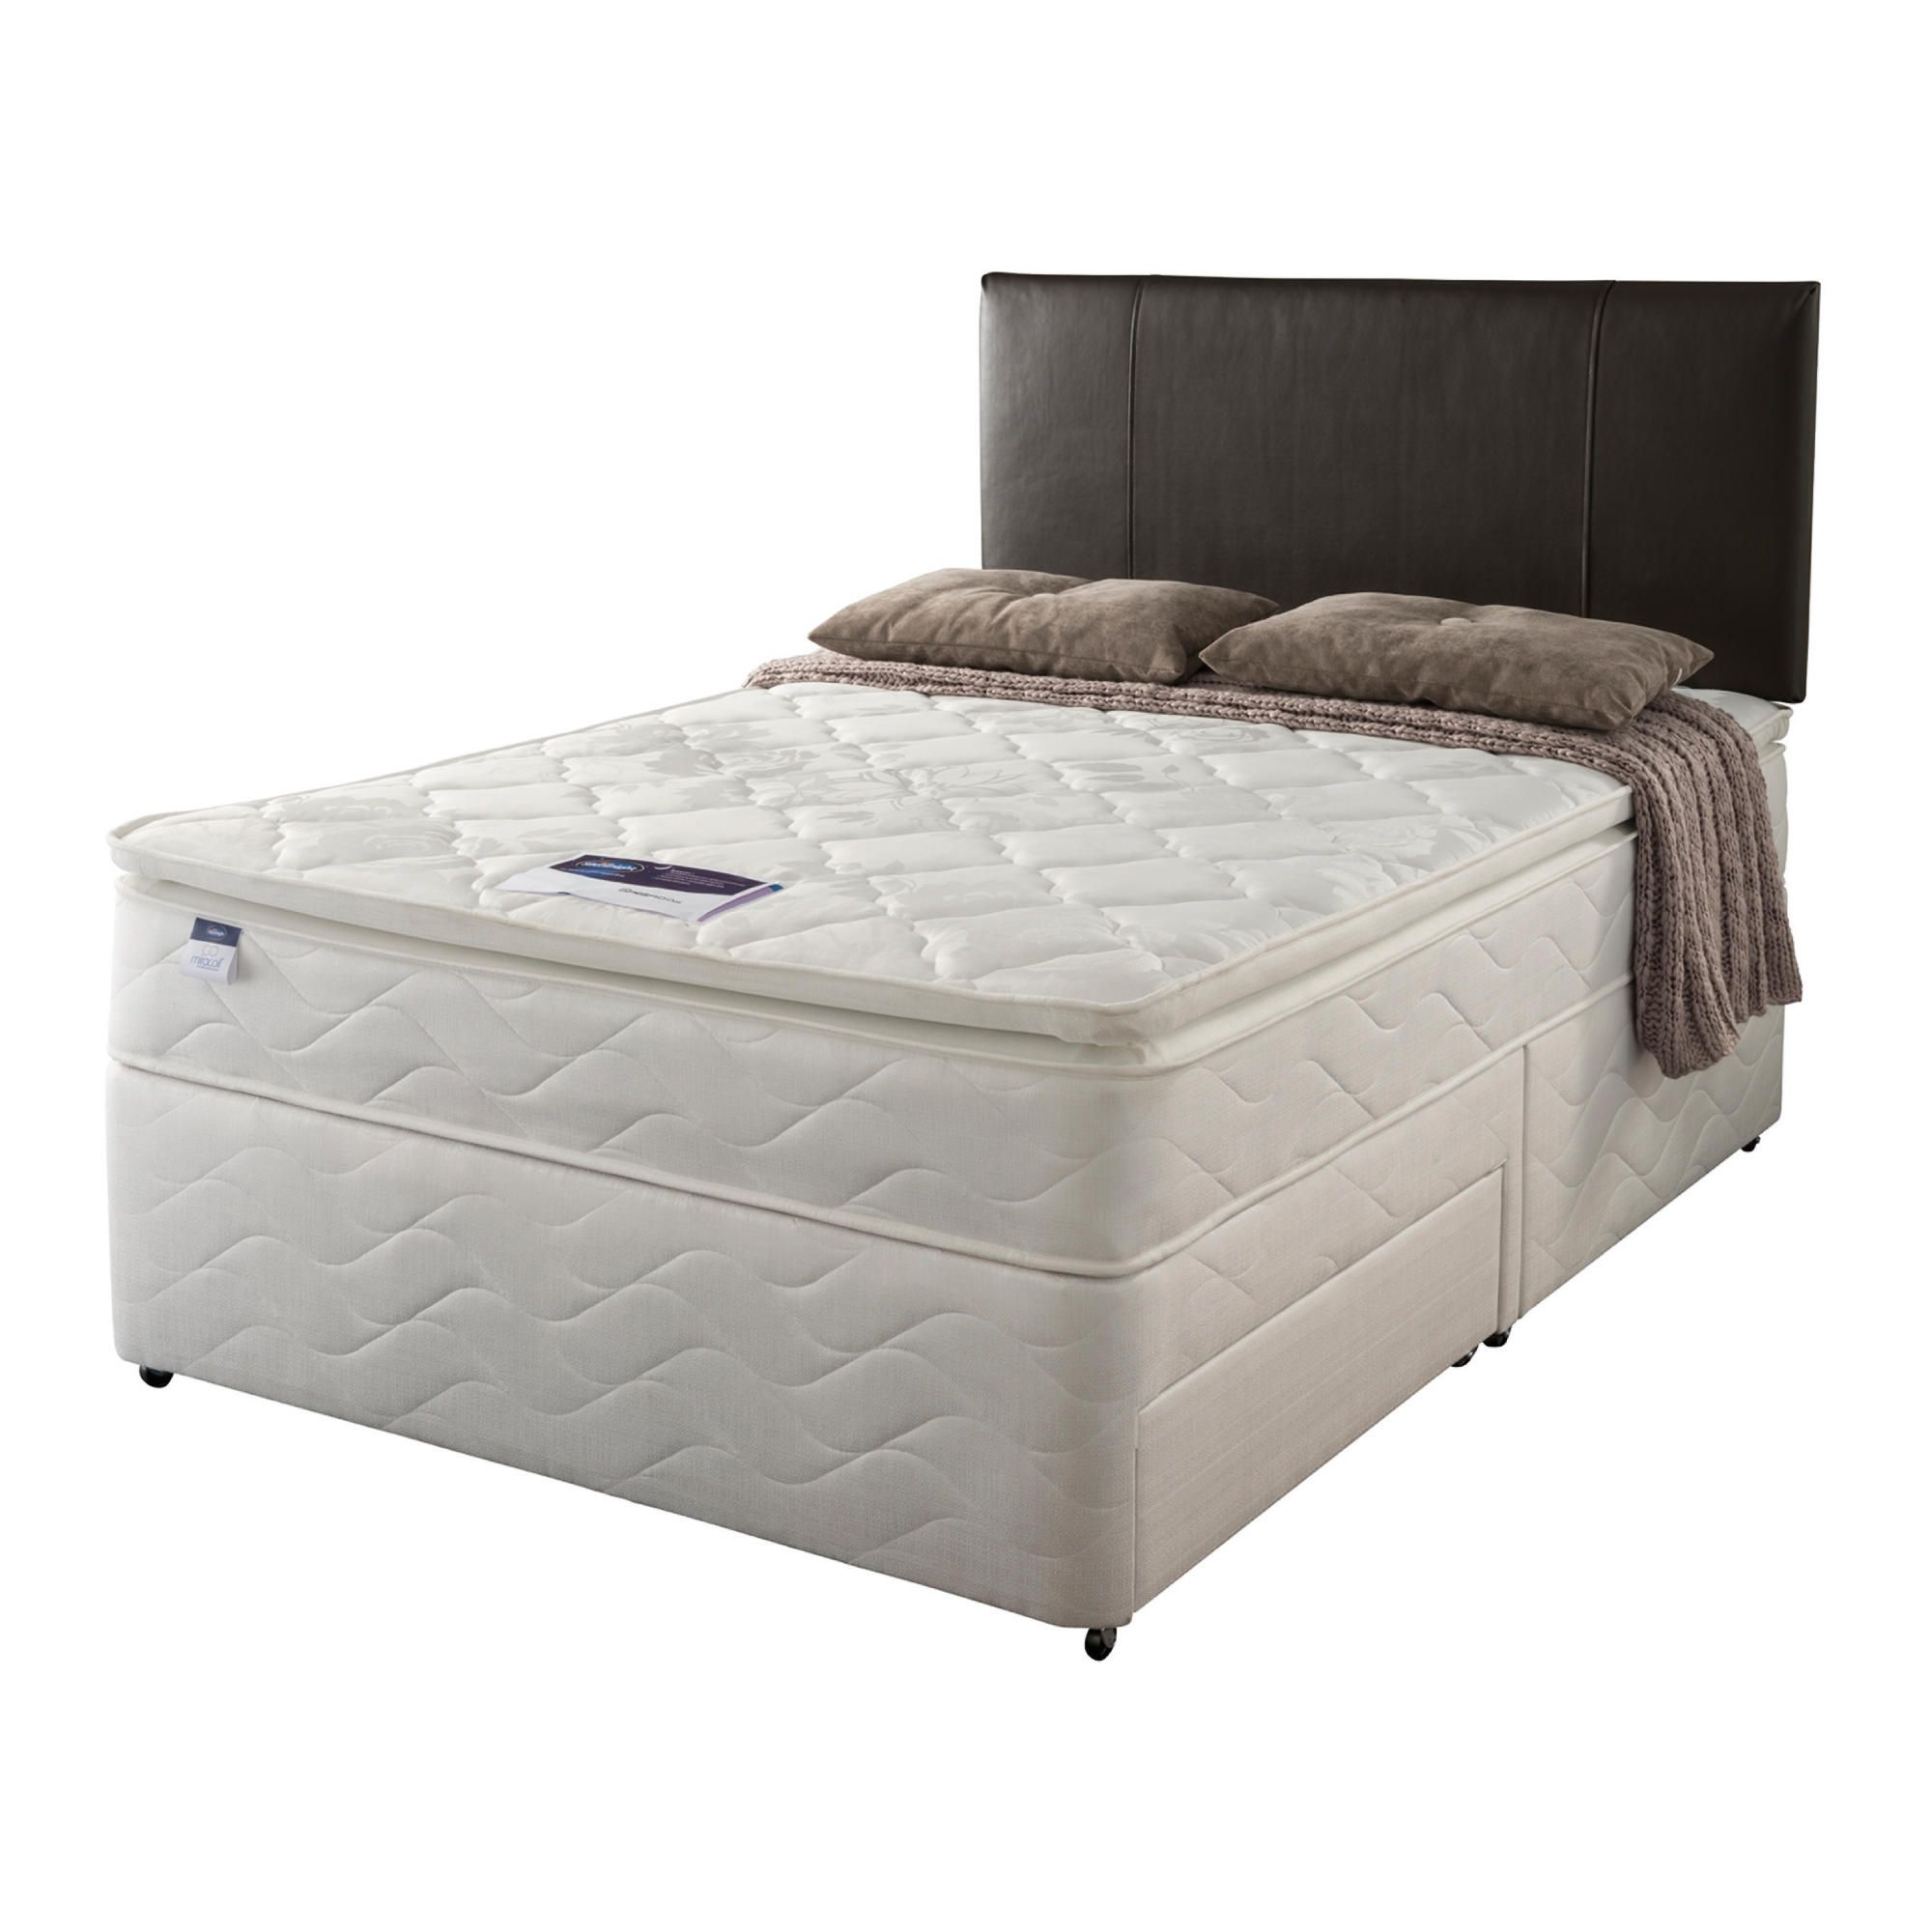 Silentnight Miracoil Pillowtop Fiji Single Non Storage Divan set at Tesco Direct